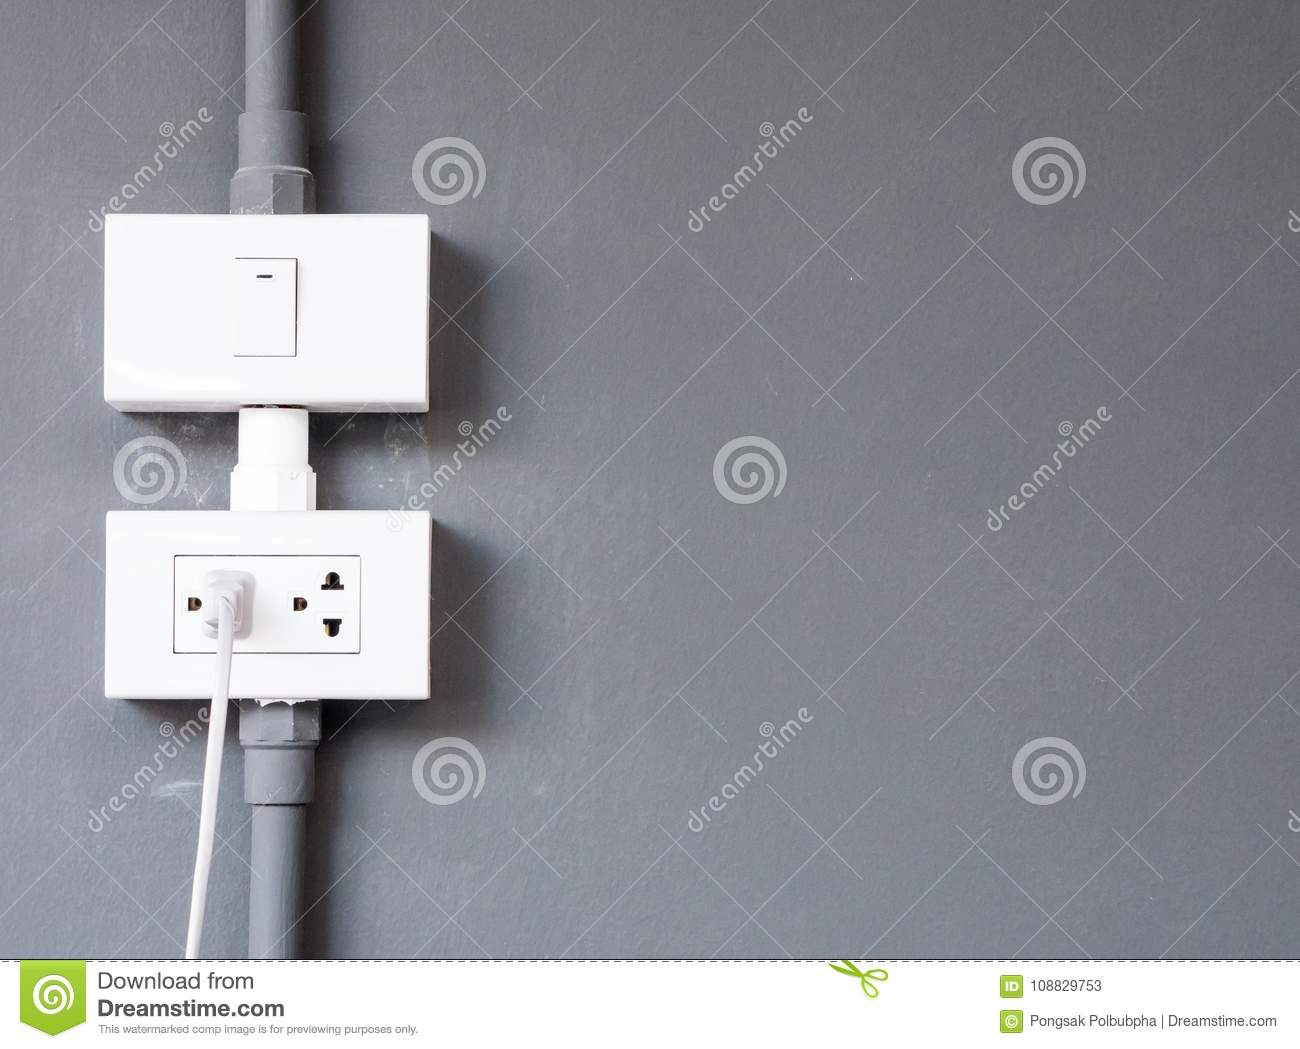 White Electrical Outlet And Light Bulb Switch. Stock Image - Image ...